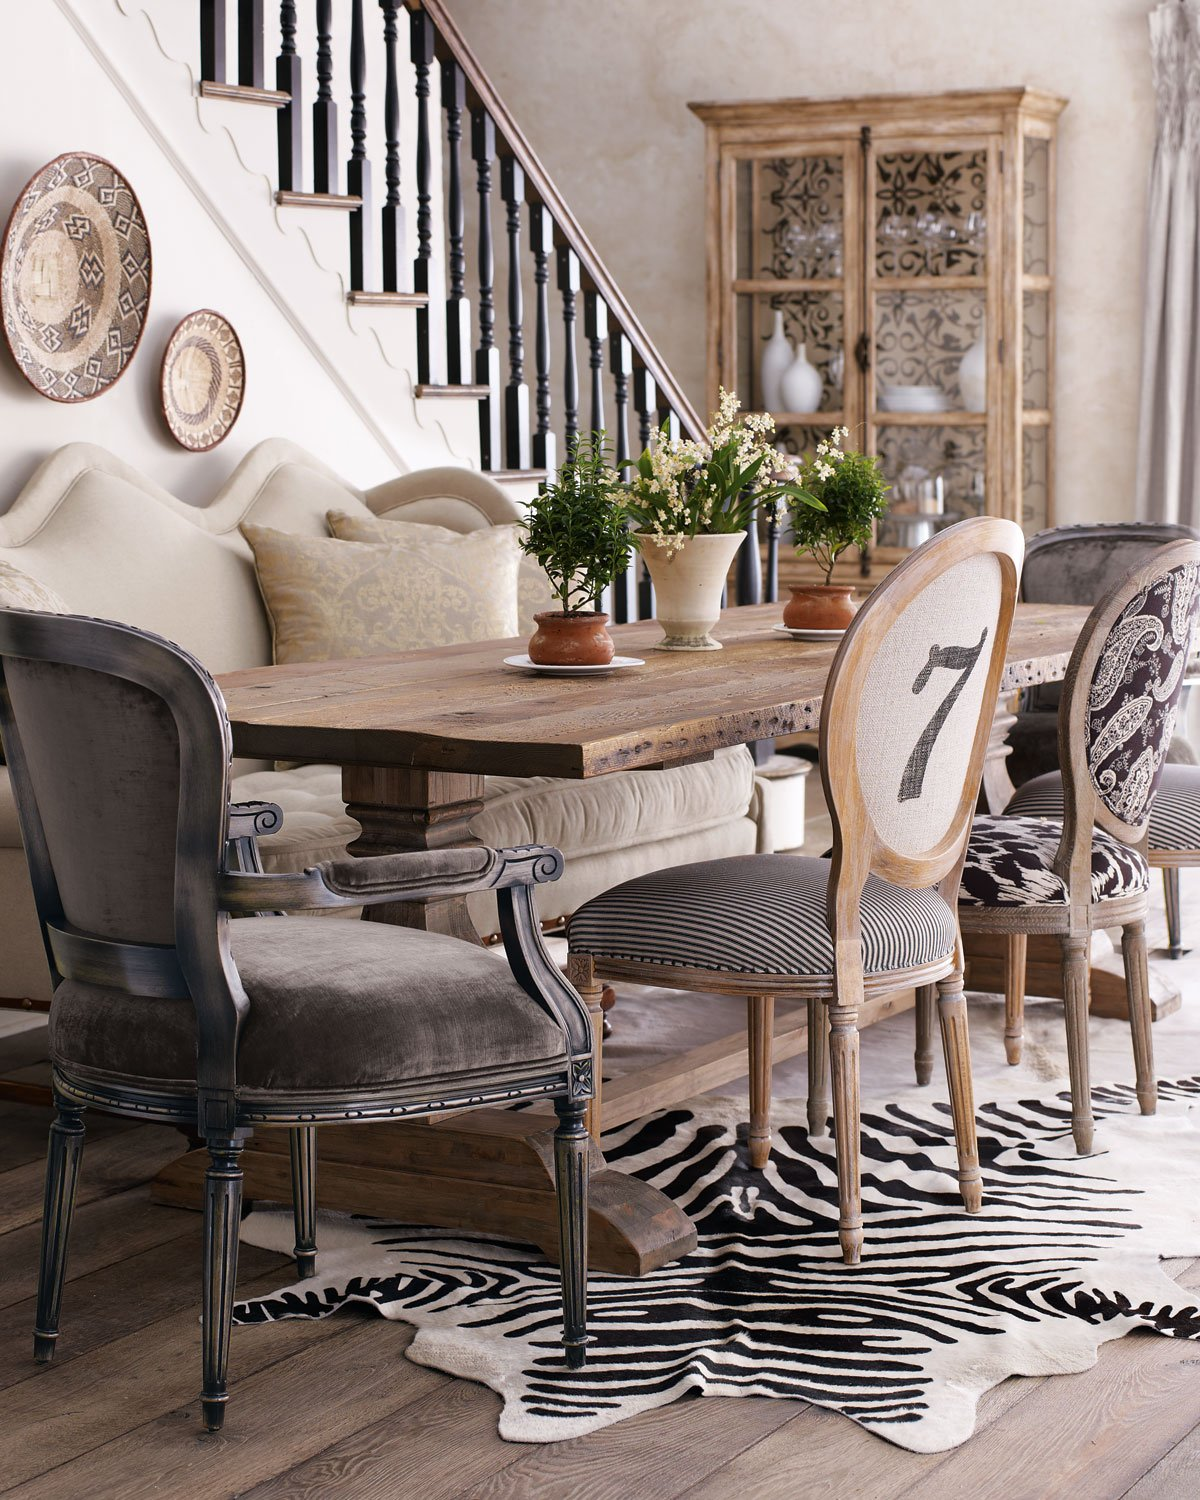 How To Mix amp Match Dining Chairs TIDBITSampTWINE